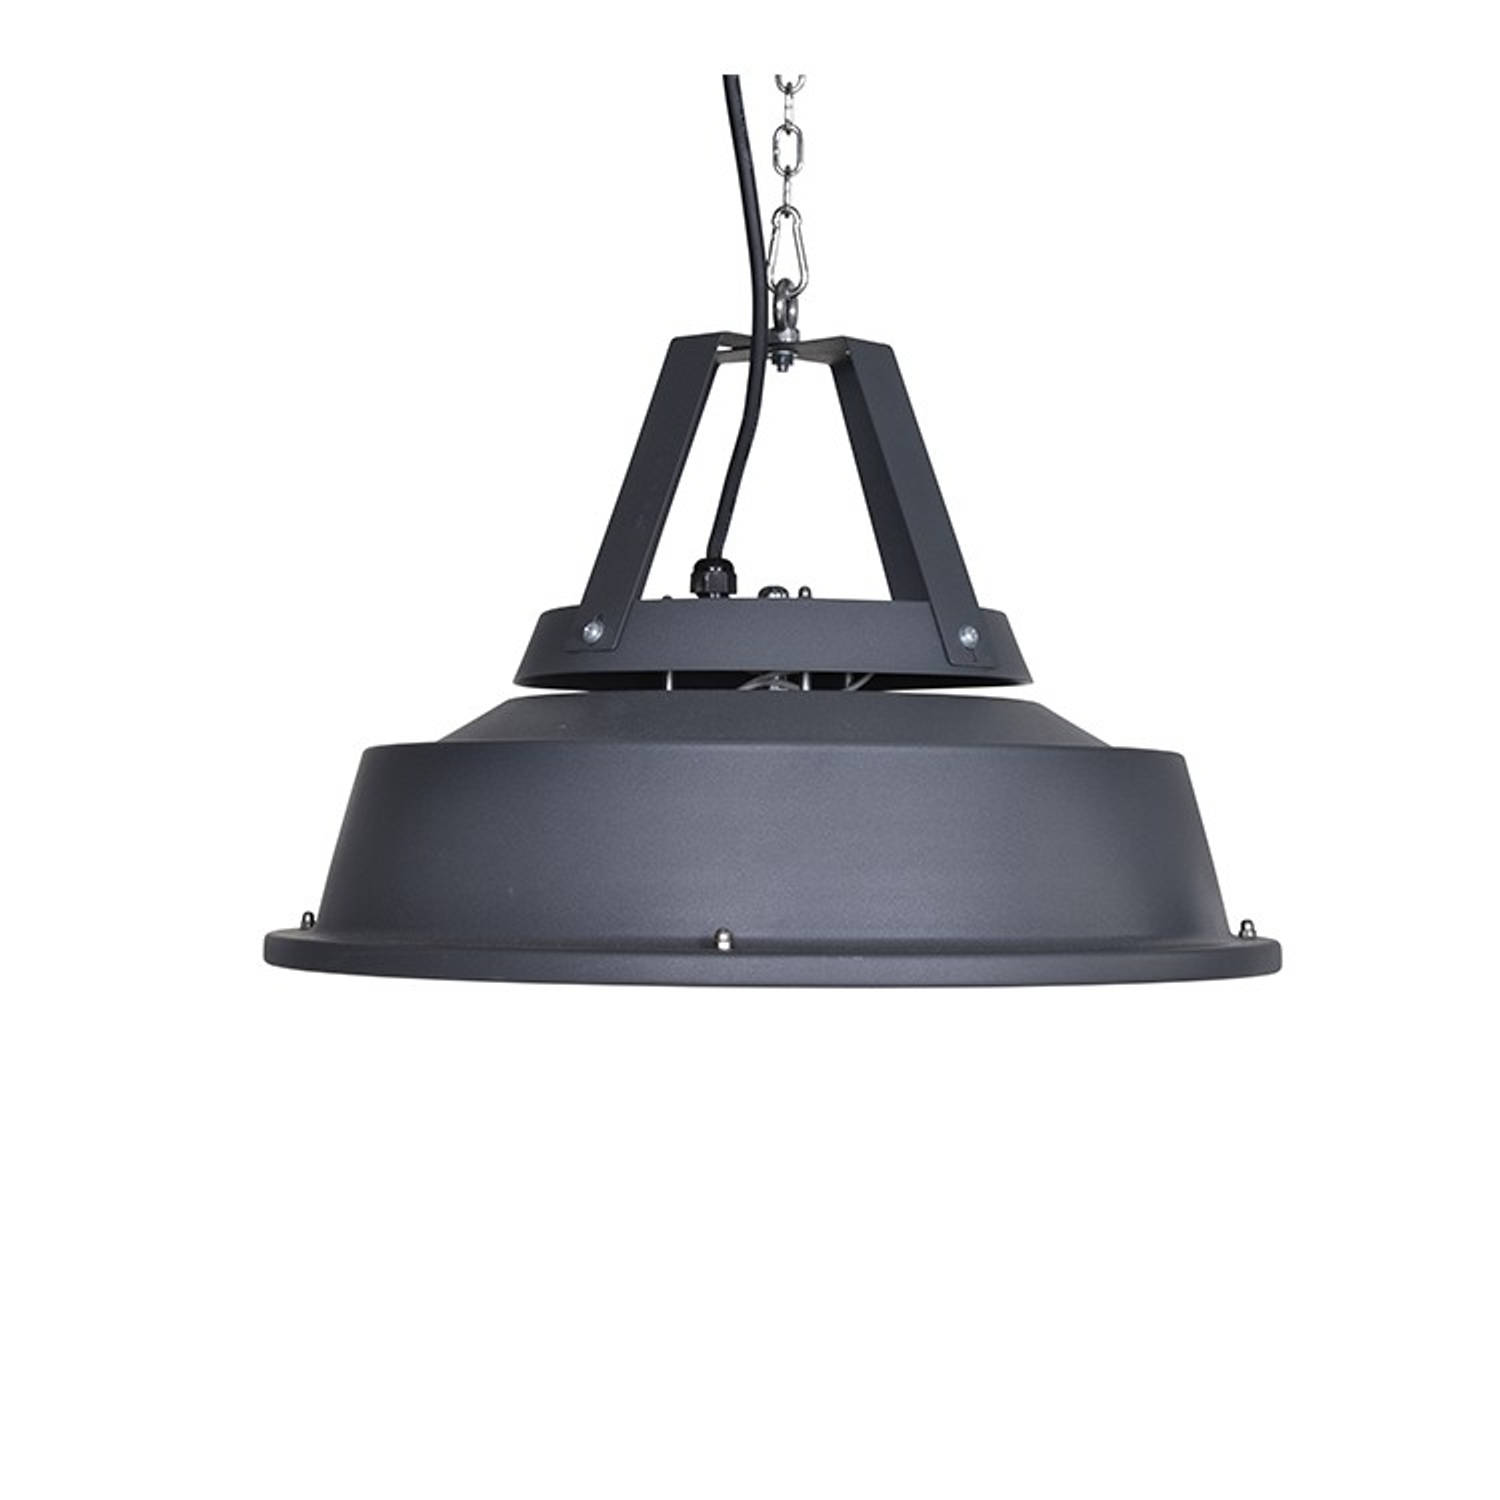 Retro hangende heater 43cm mat carbon black/ 1500w